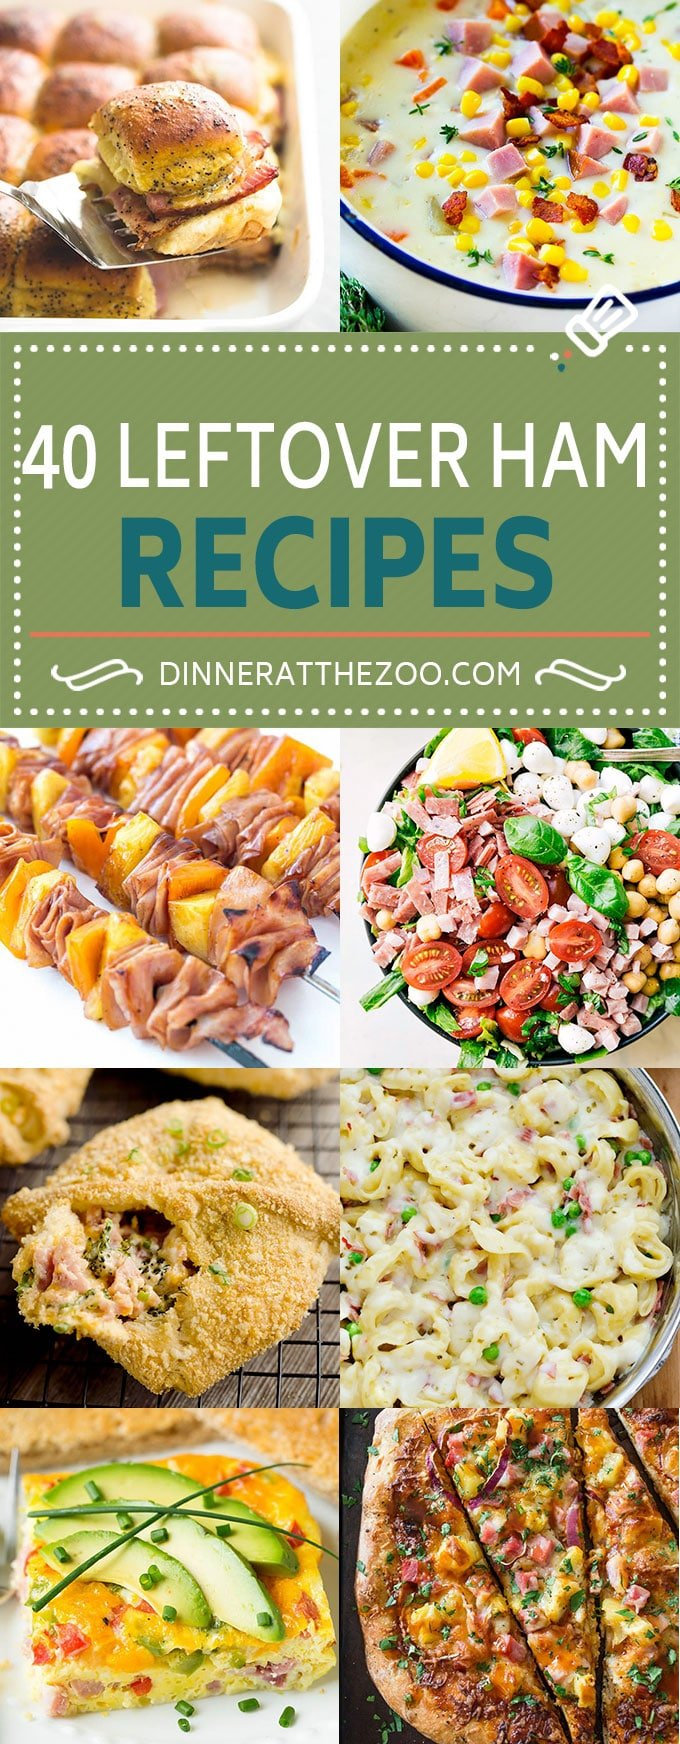 40 Leftover Ham Recipes